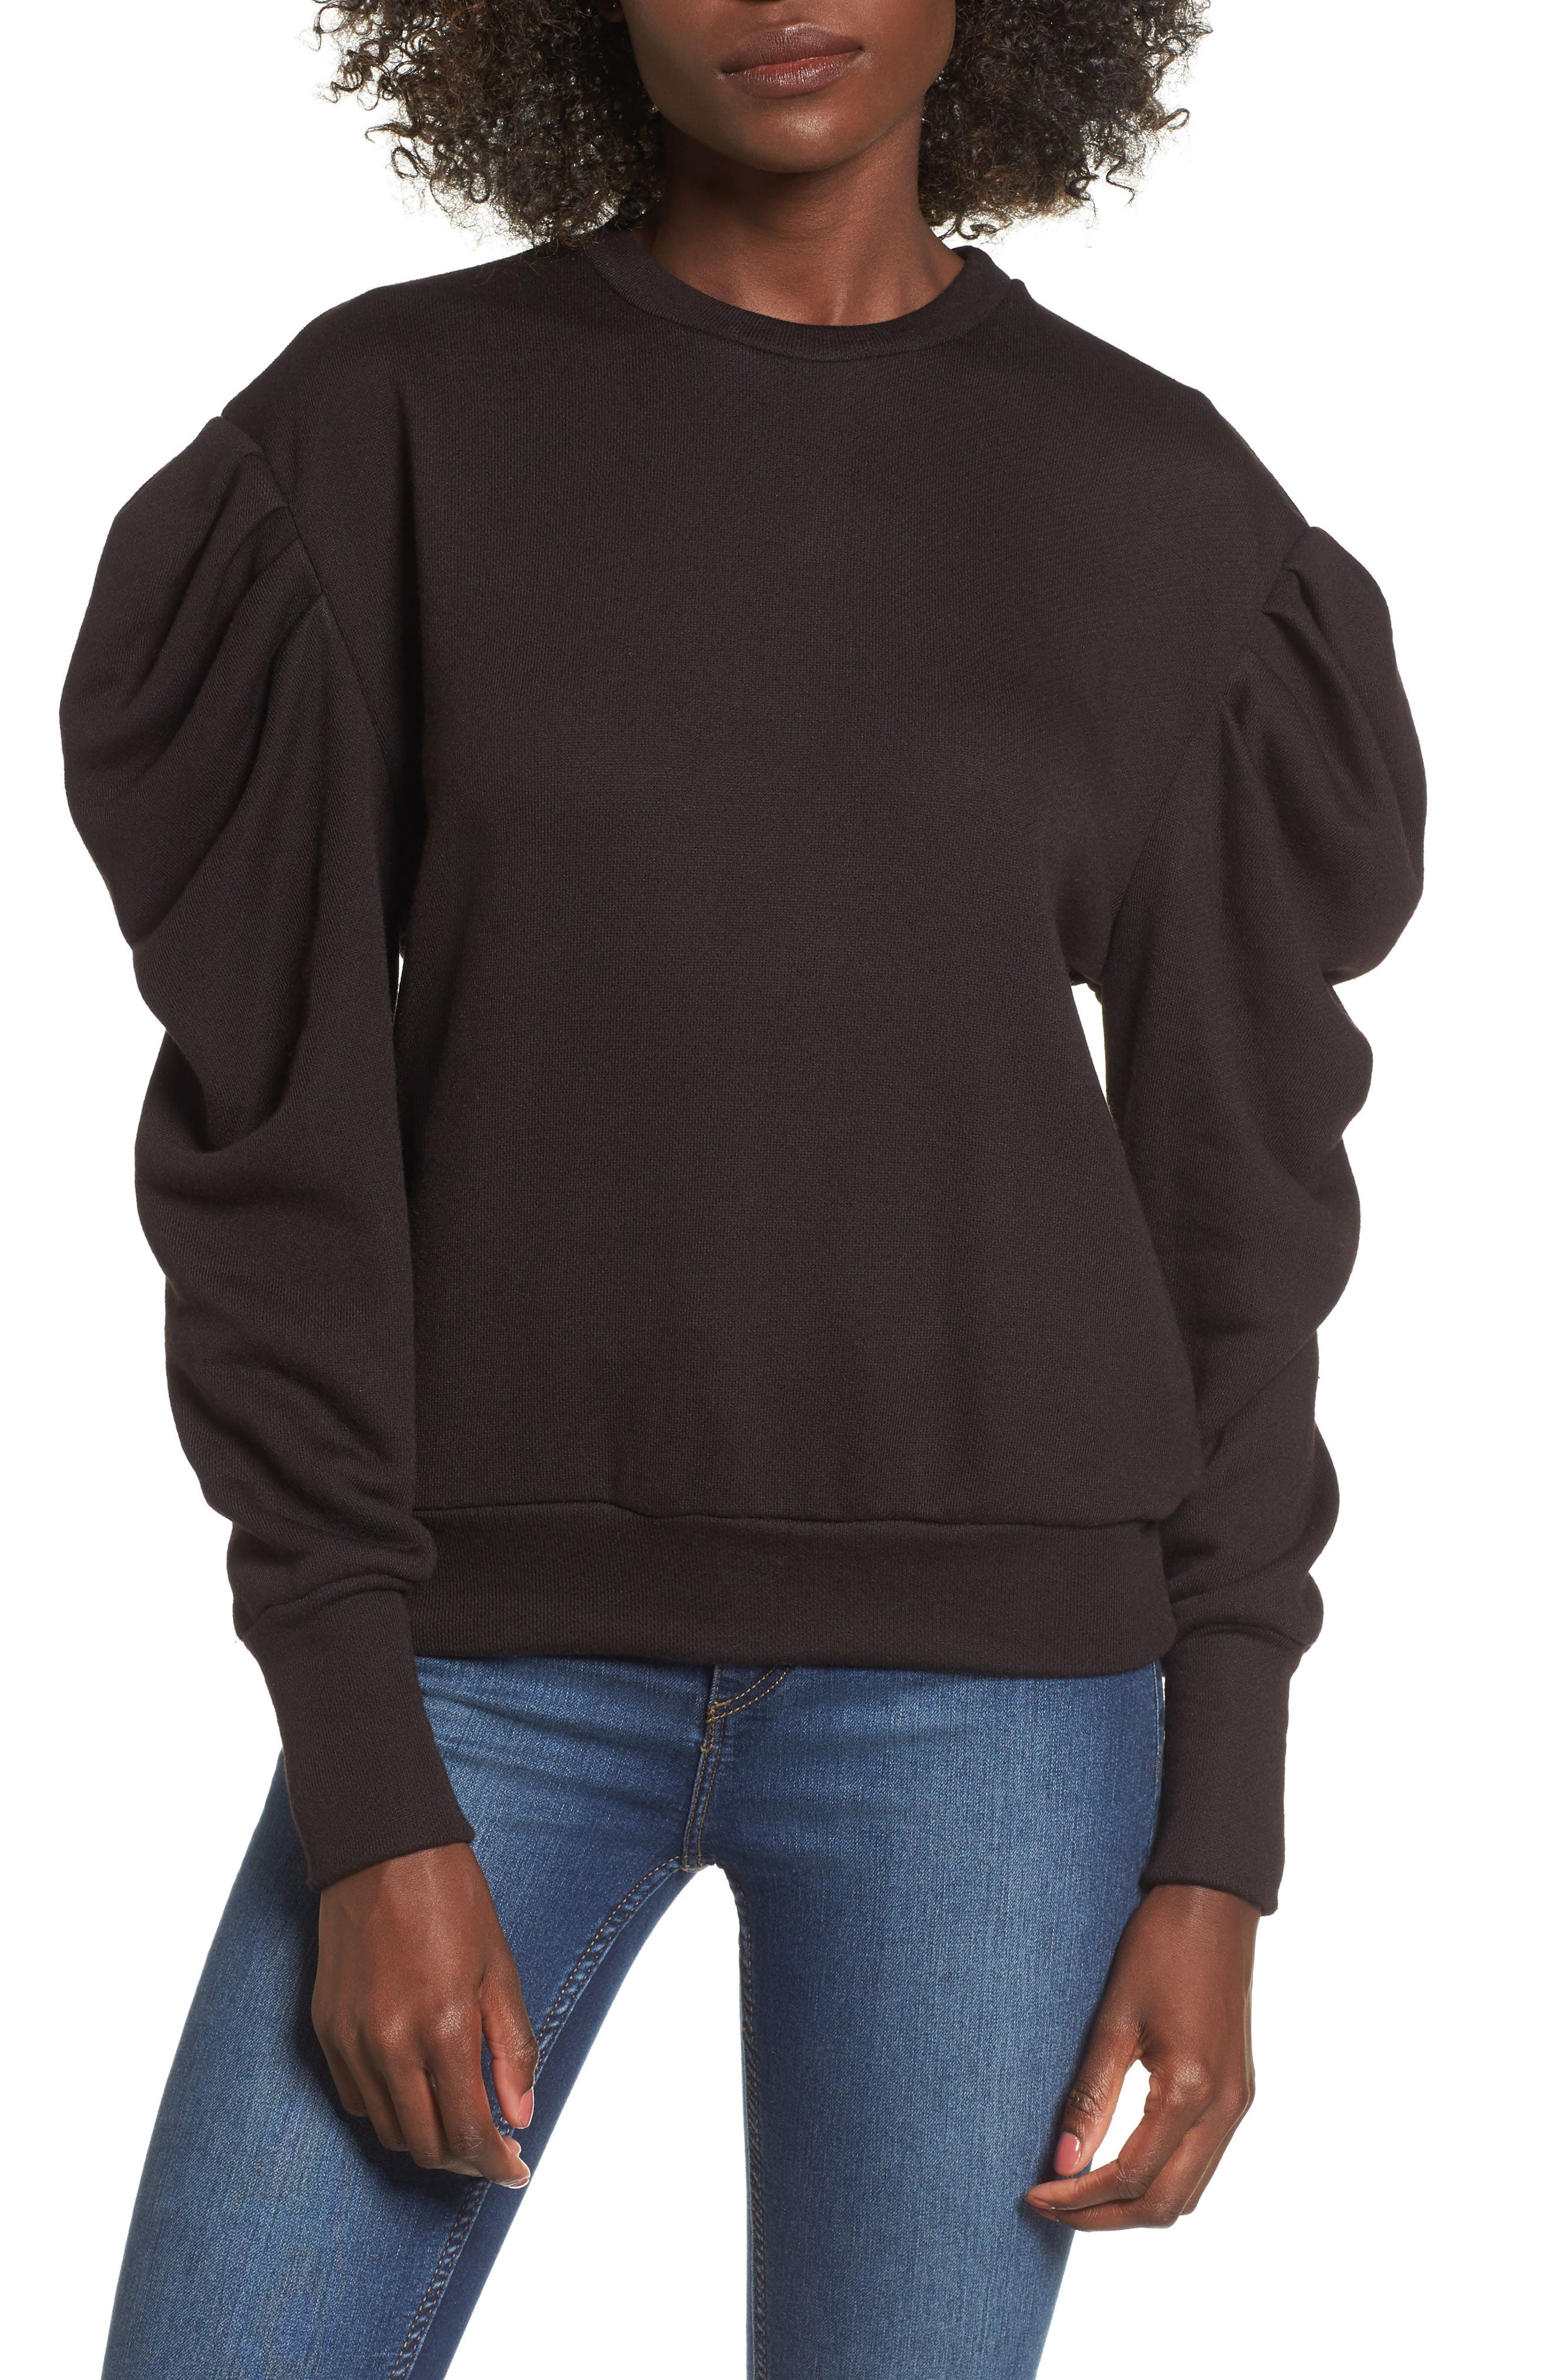 James Balloon Sleeve Sweatshirt,                         Main,                         color, 001